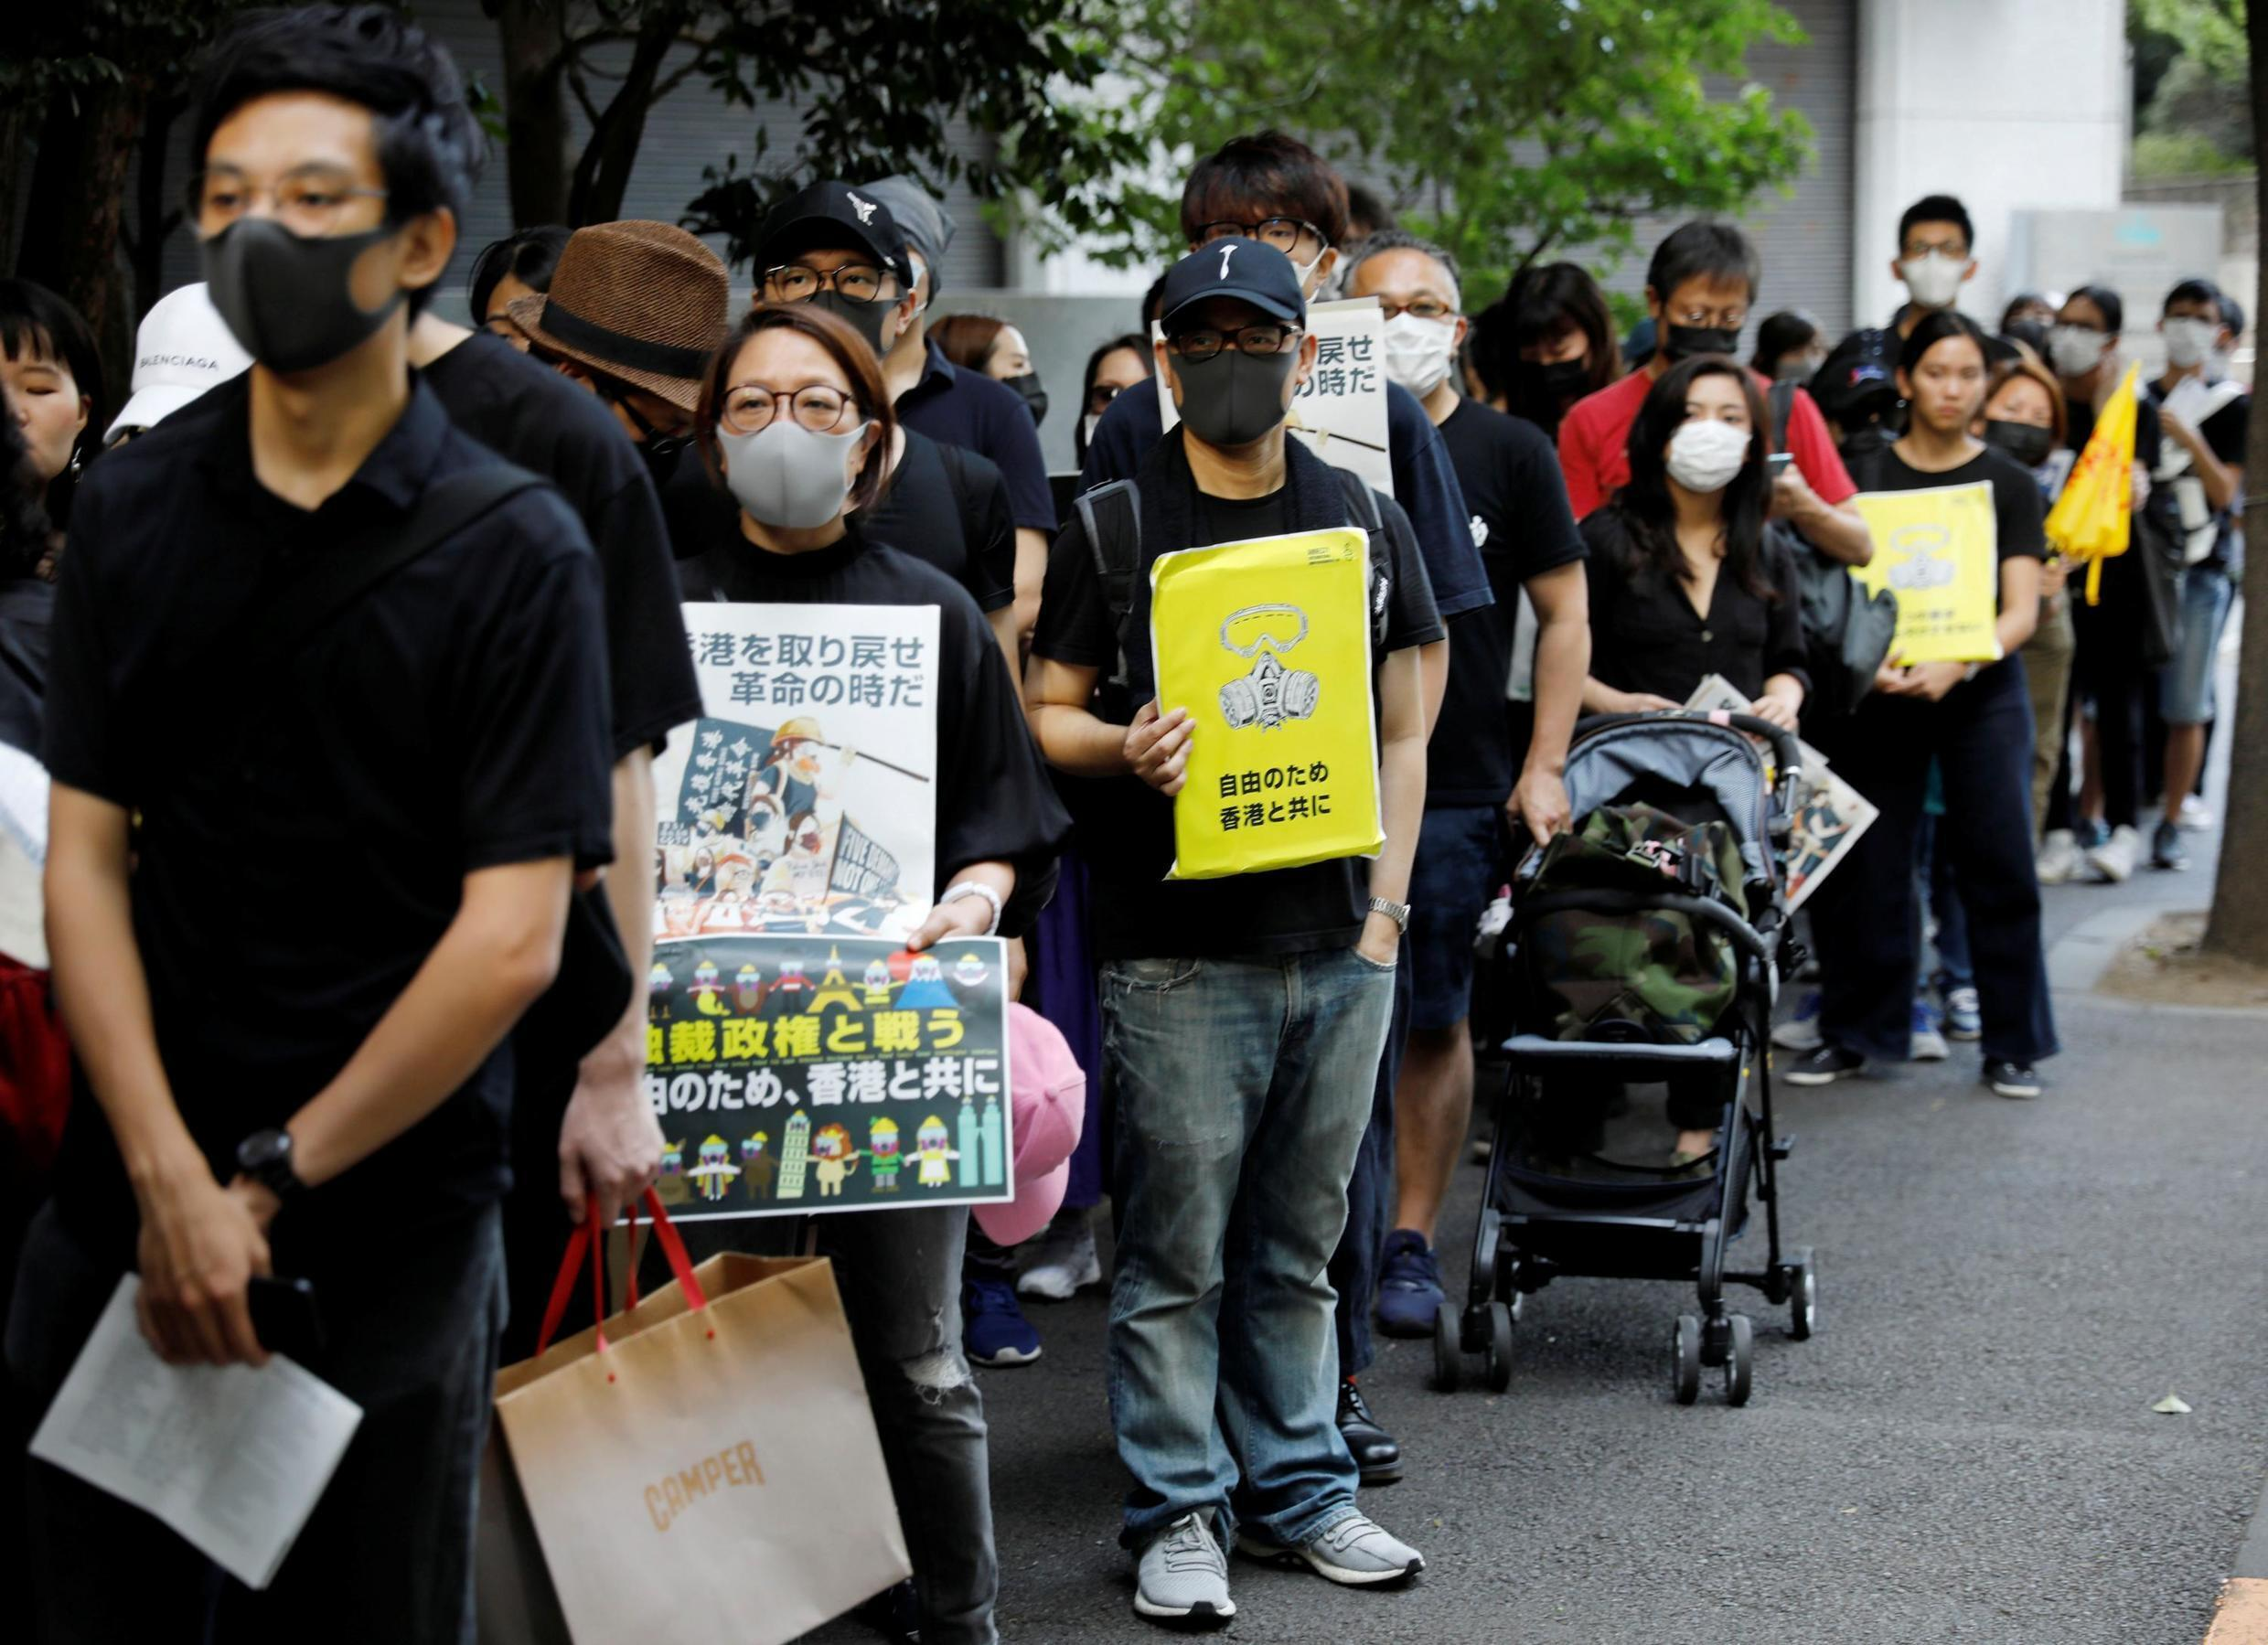 Protesters including Hong Kong people living in Tokyo, hold banners at a rally to support the pro-democracy movement in Hong Kong nearby Hong Kong Economic and Trade Office in Tokyo, Japan, September 29, 2019.